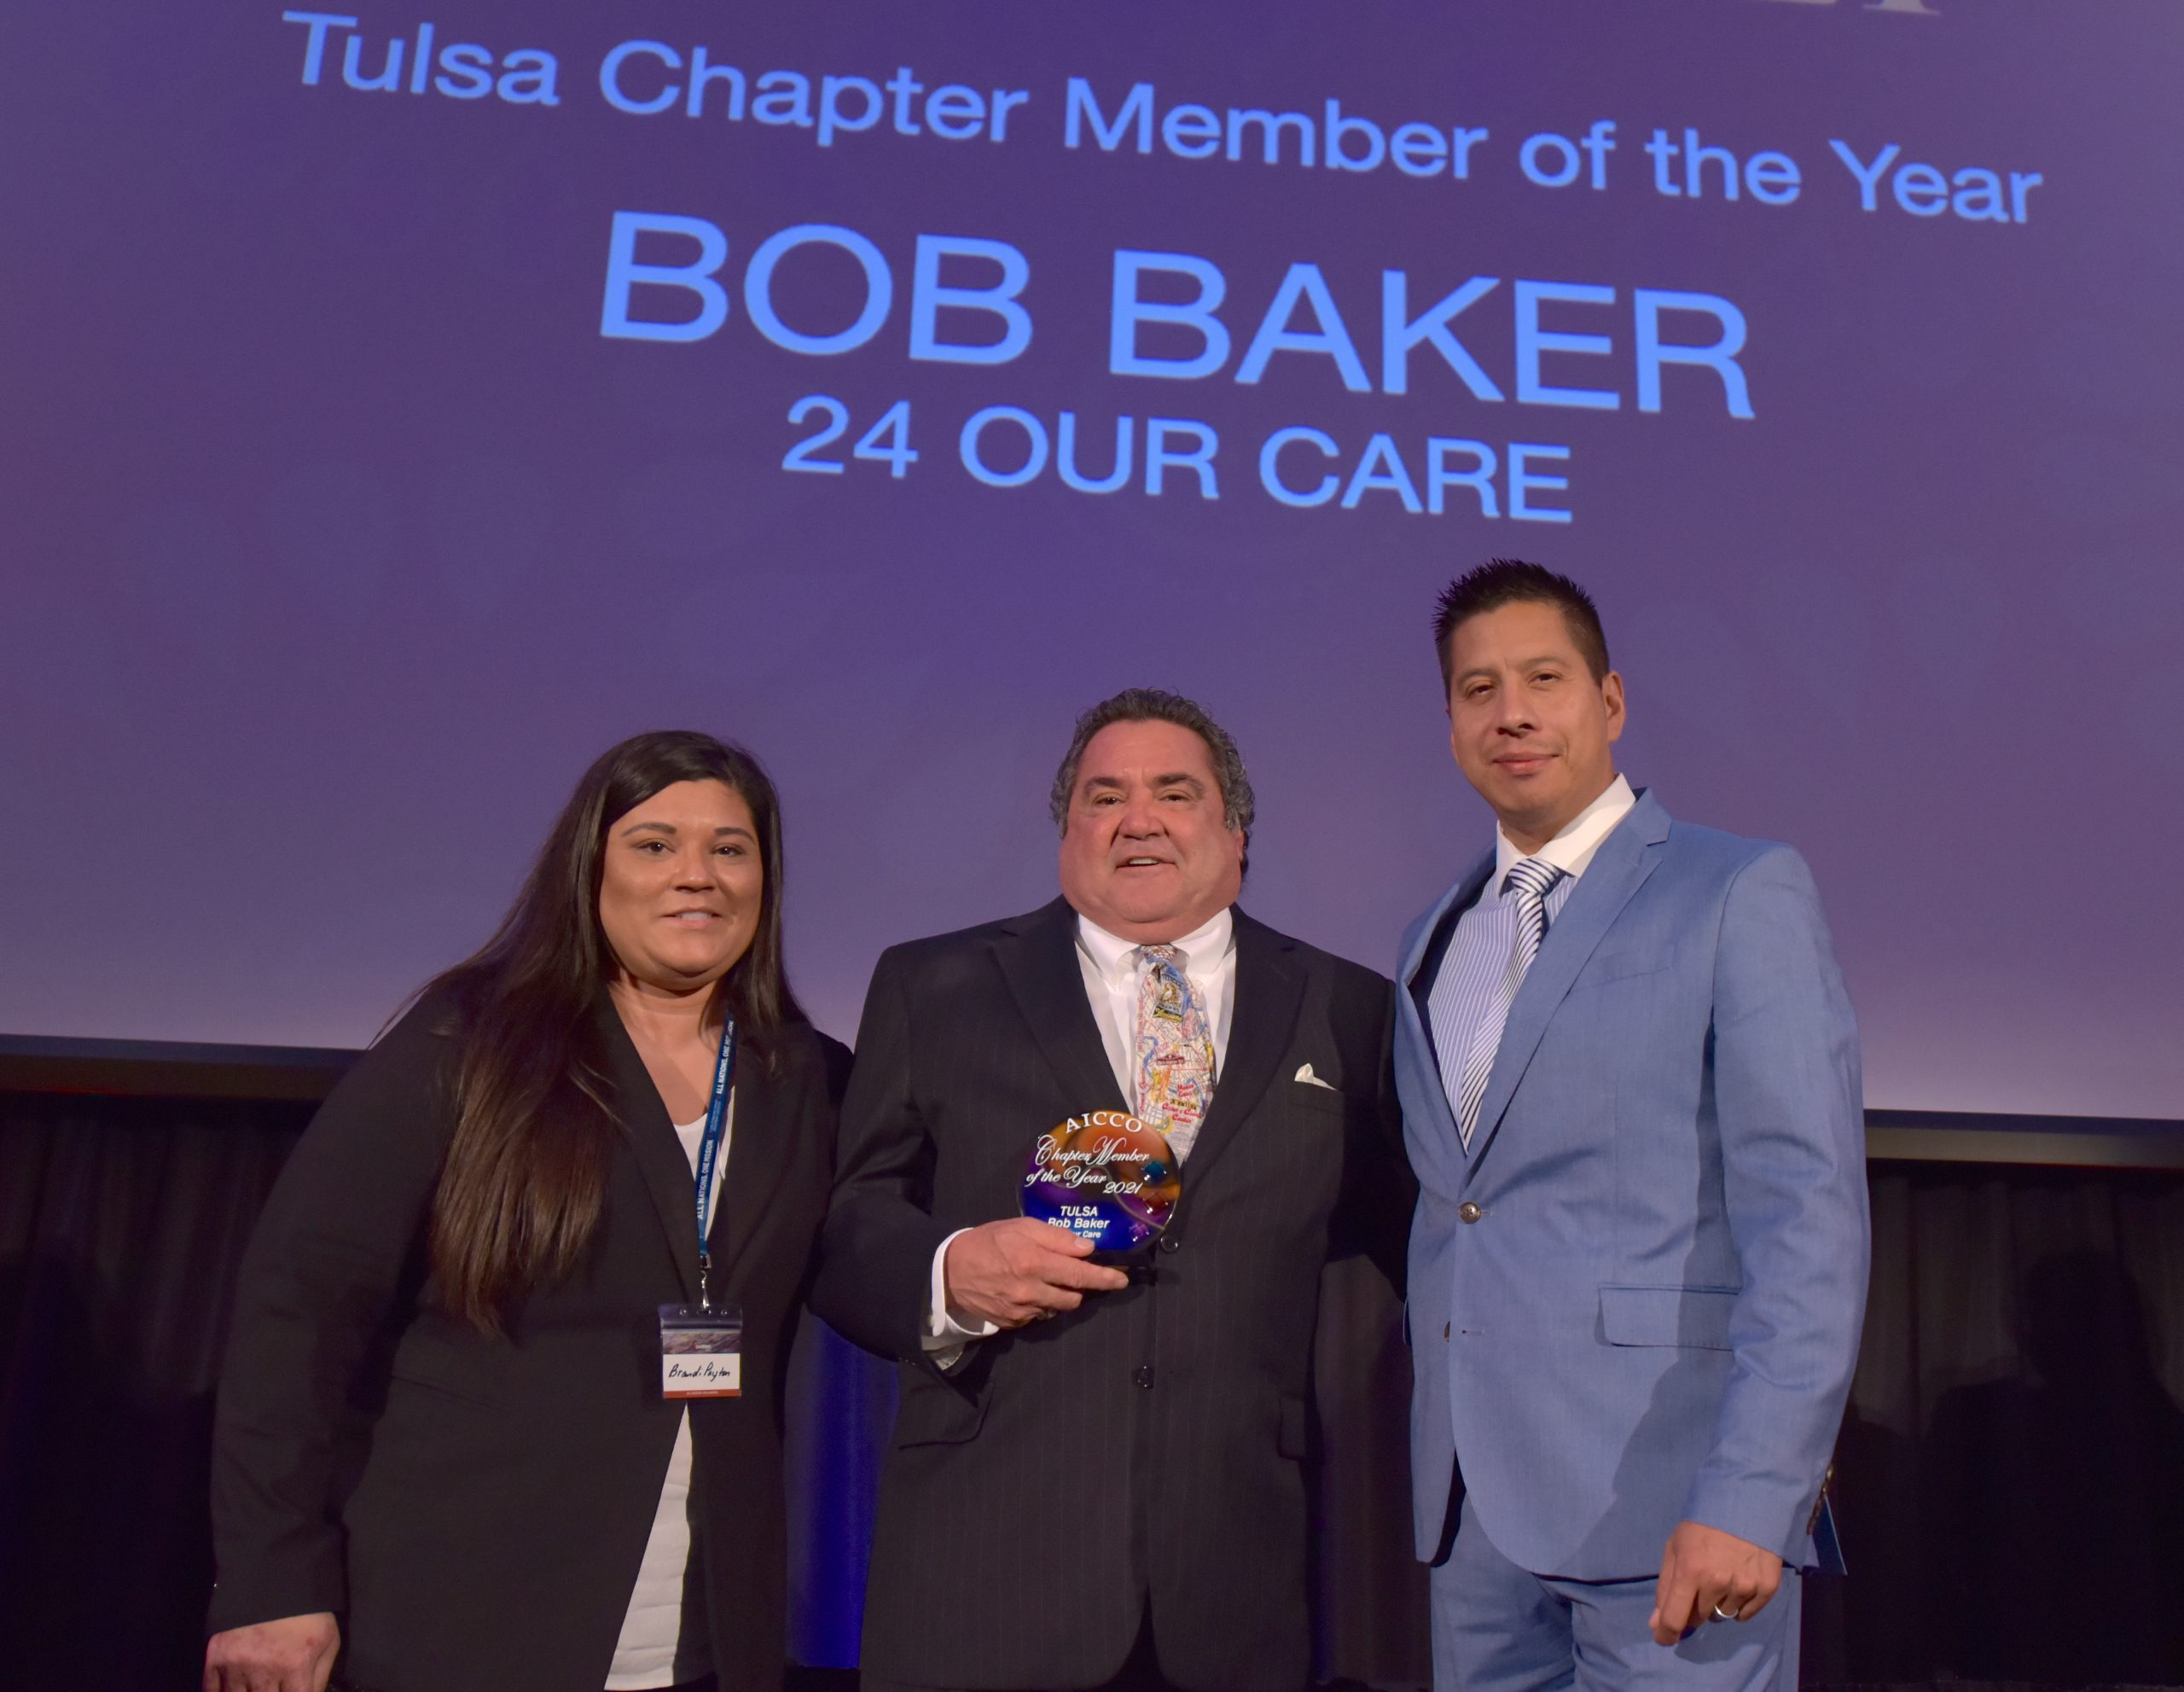 TULSA CHAPTER MEMBER OF THE YEAR AWARD BOB BAKER / 24 Our Care